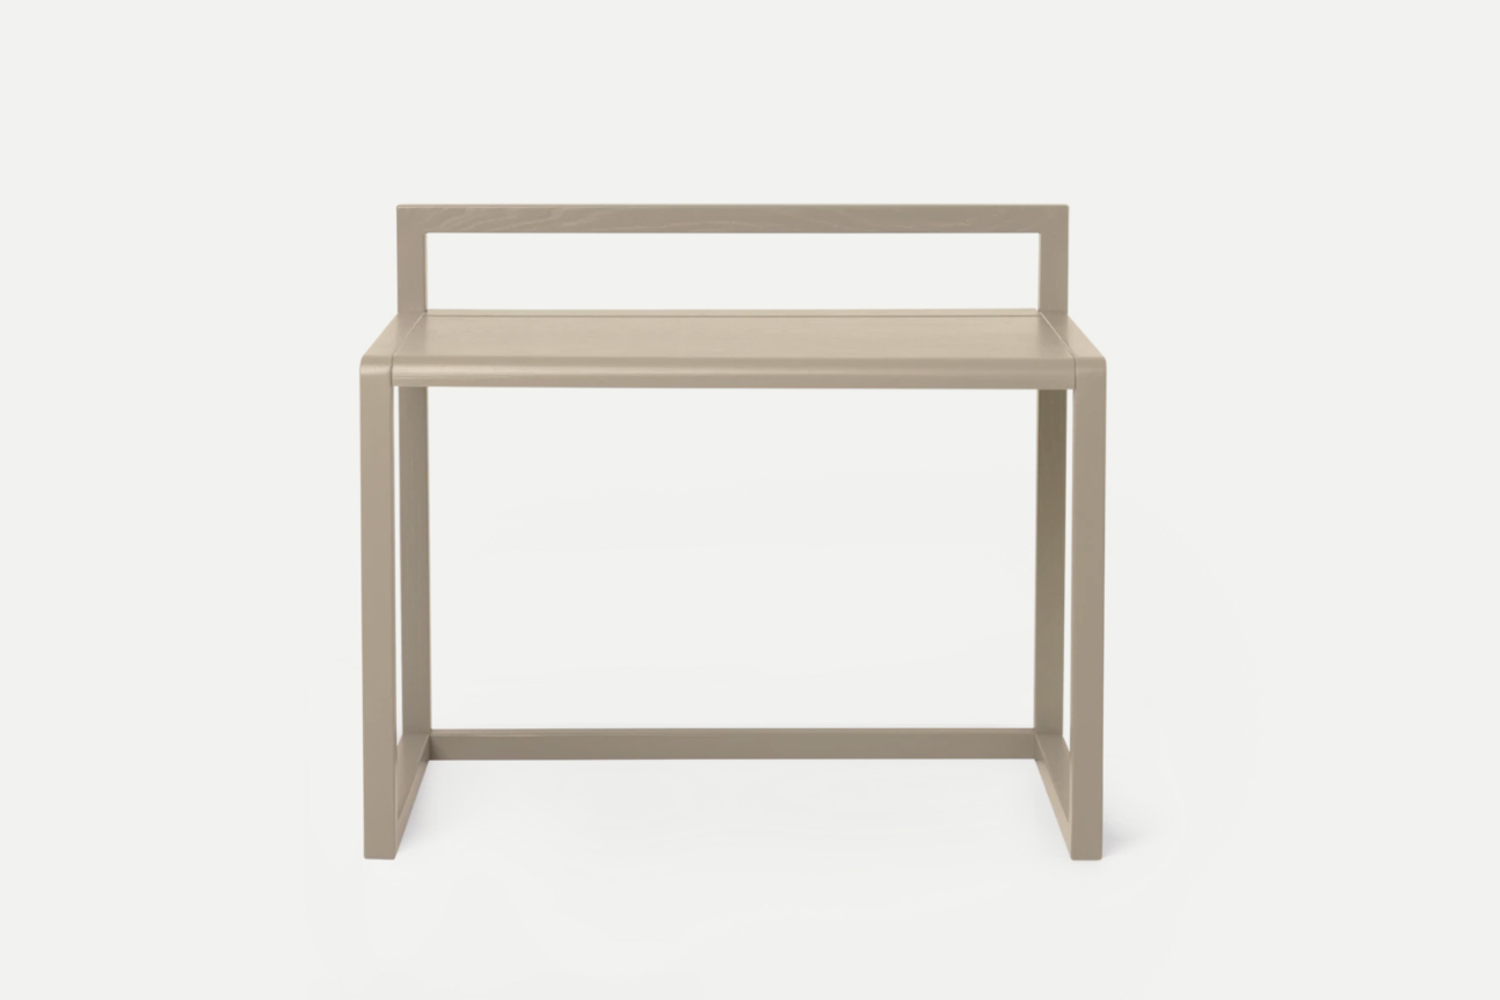 The Little Architect Desk comes in a range of color finishes. Made of solid ash wood and veneer, the desk is $339 at Ferm Living. Also available is a coordinating Little Architect Chair for $9.